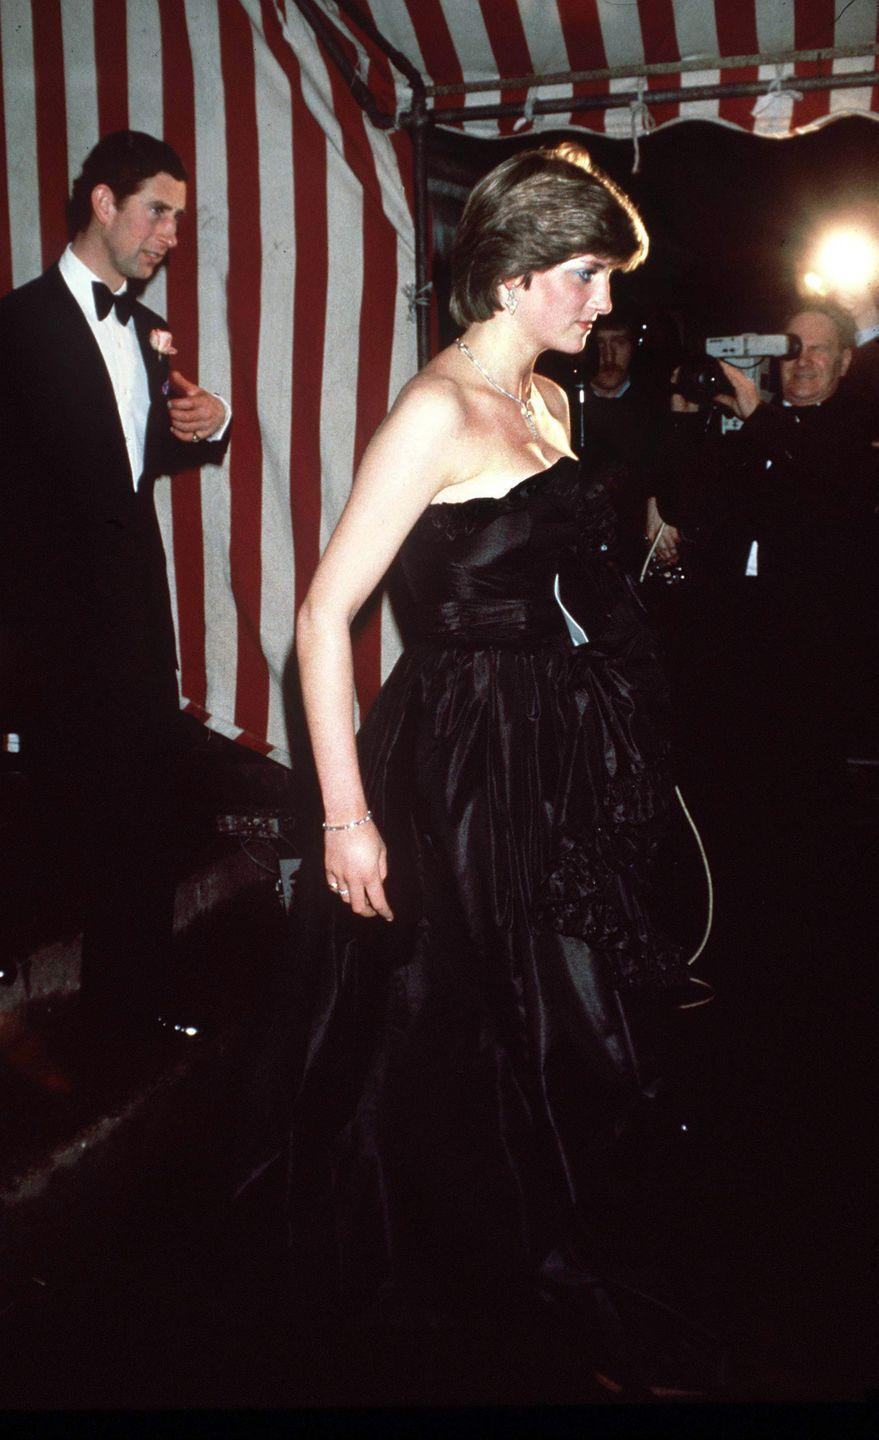 <p>In a black taffeta dress by the the Emanuels, with a diamond tennis bracelet and necklace, attending a fundraising concert at Goldsmiths Hall in London. </p>